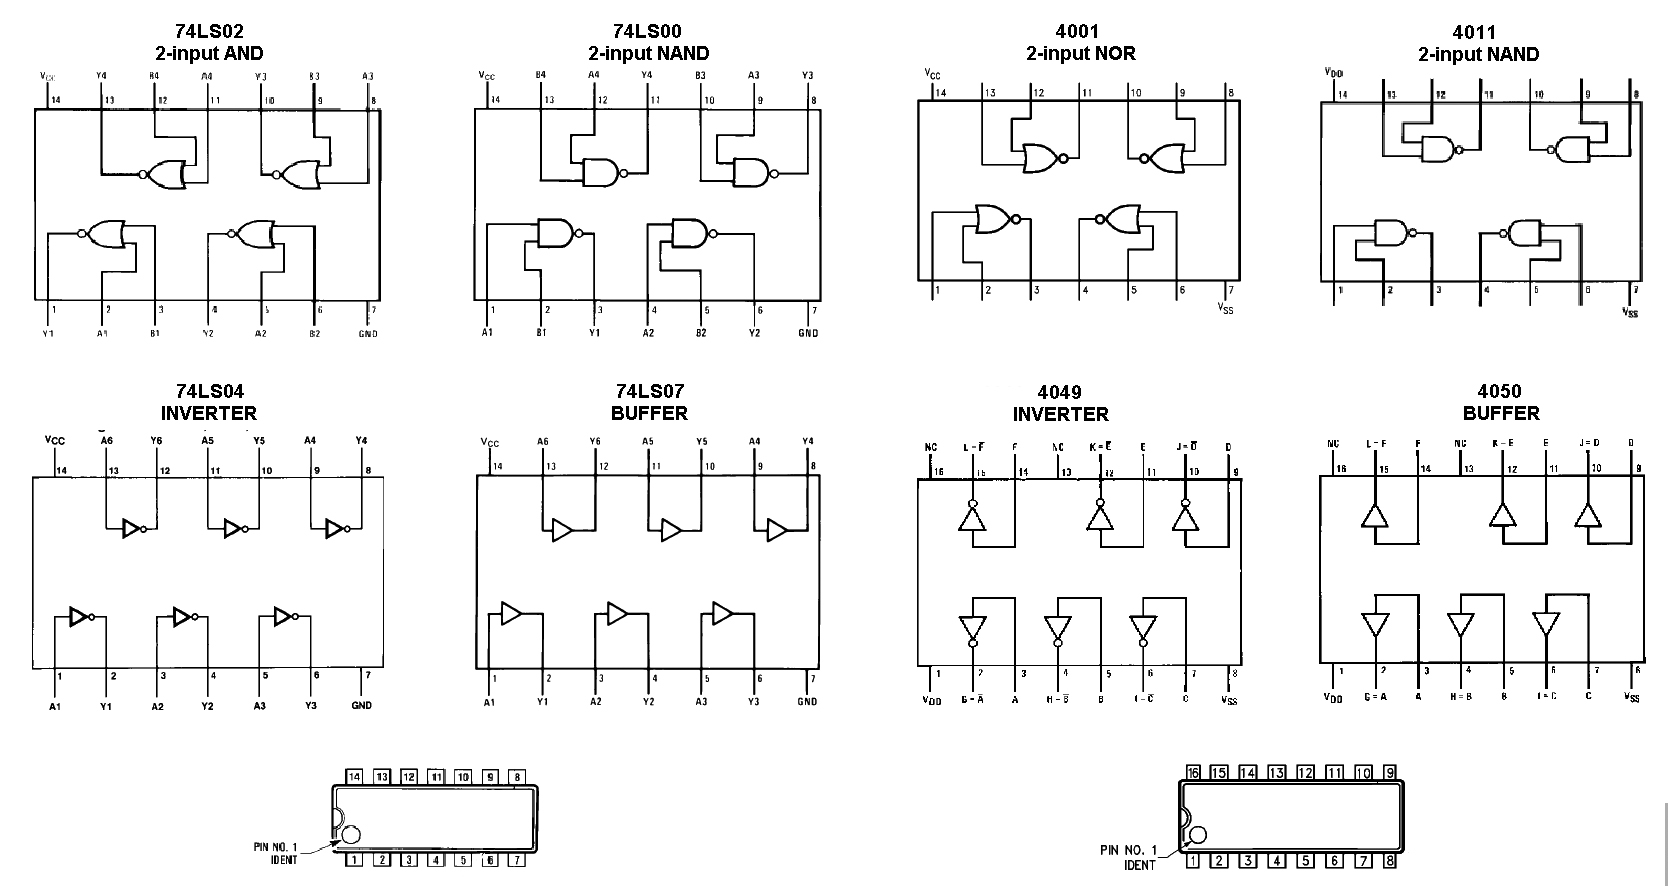 small logic gates the building blocks of versatile digital rh nutsvolts com logic gates diagram online logic gate diagram creator